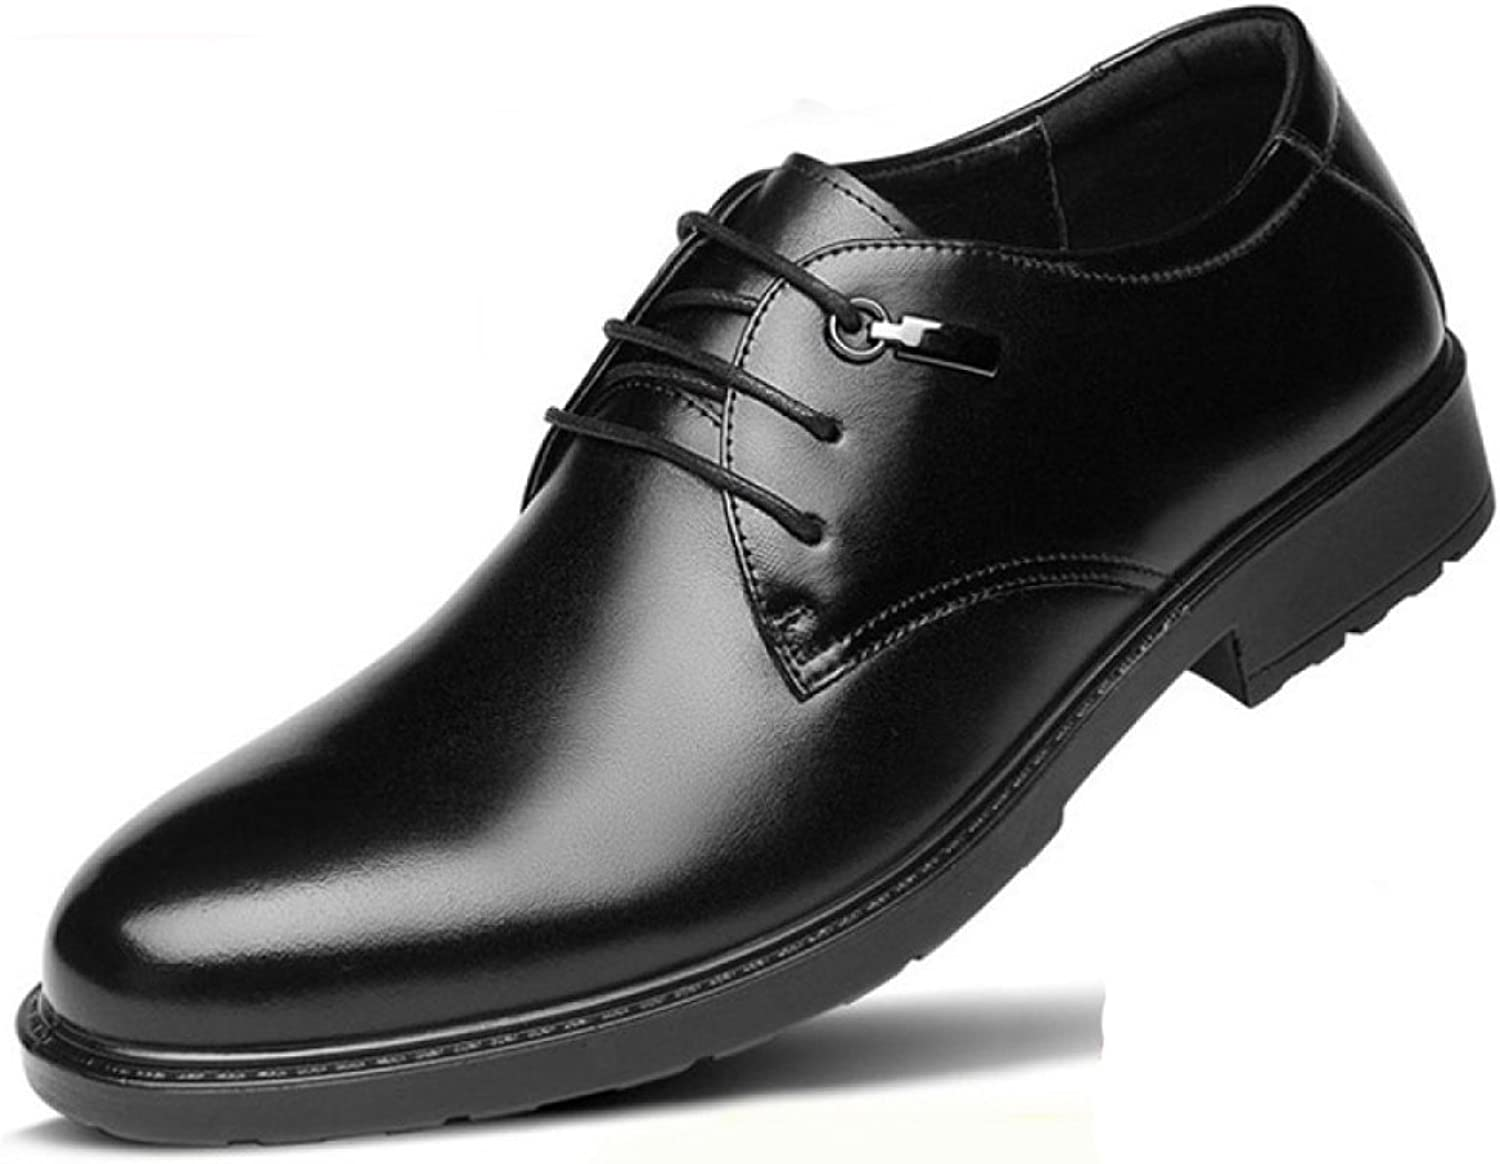 Men's Leather Formal Brogues Classic Wedding shoes Breathable Lace-ups Oxford shoes For Men Business shoes